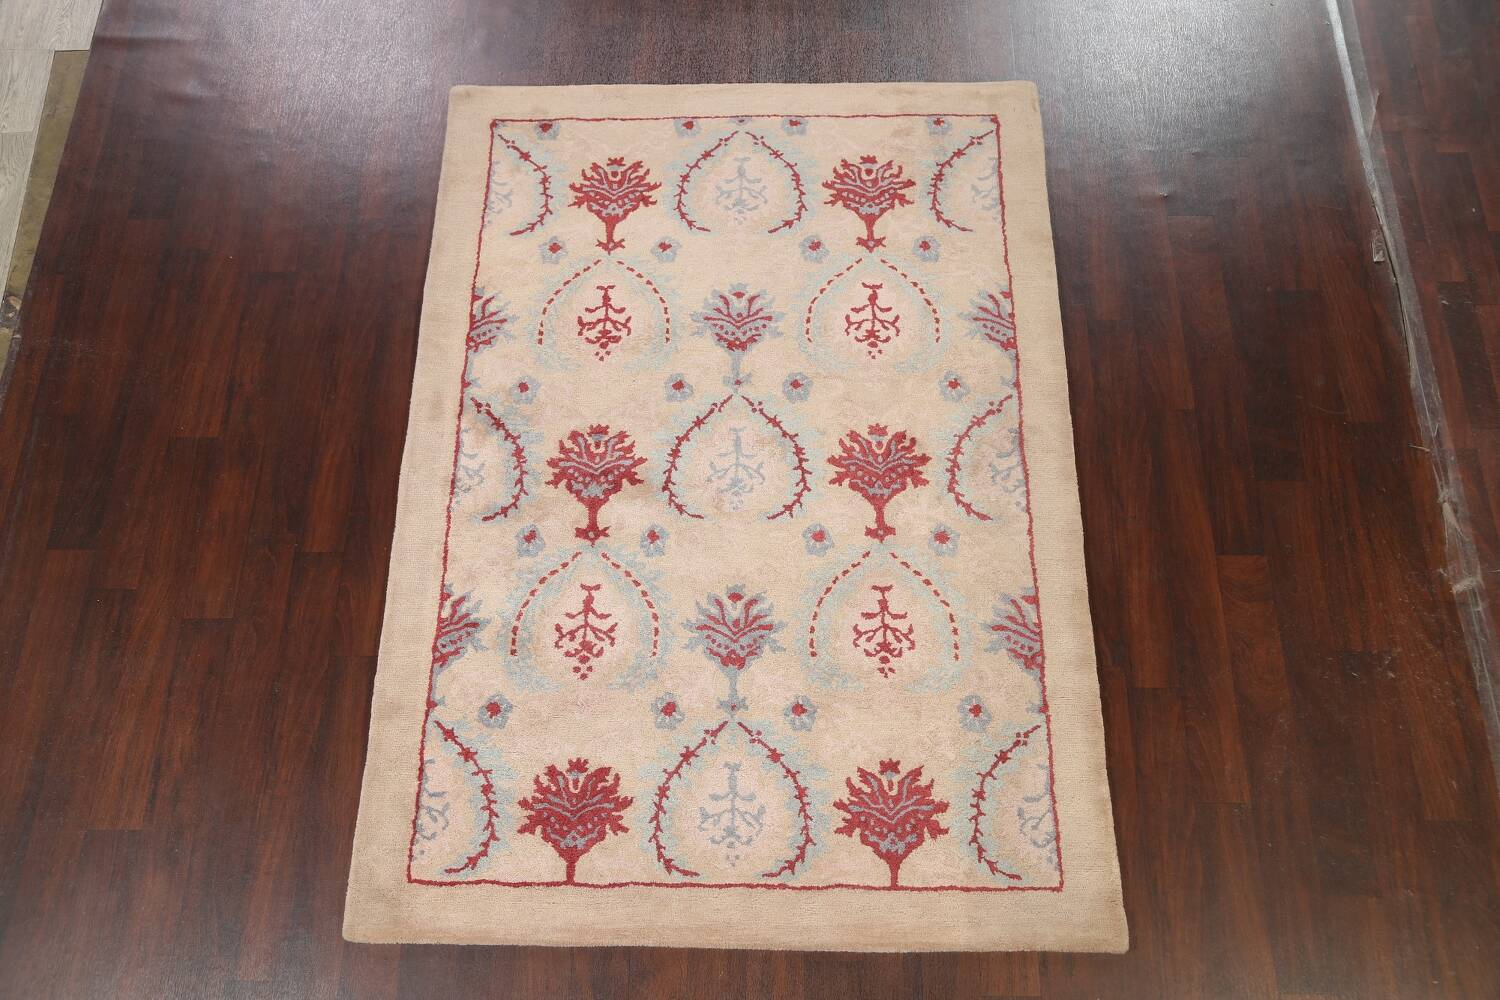 Pale Coral Hand-Tufted Floral Area Rug 6x8 image 2